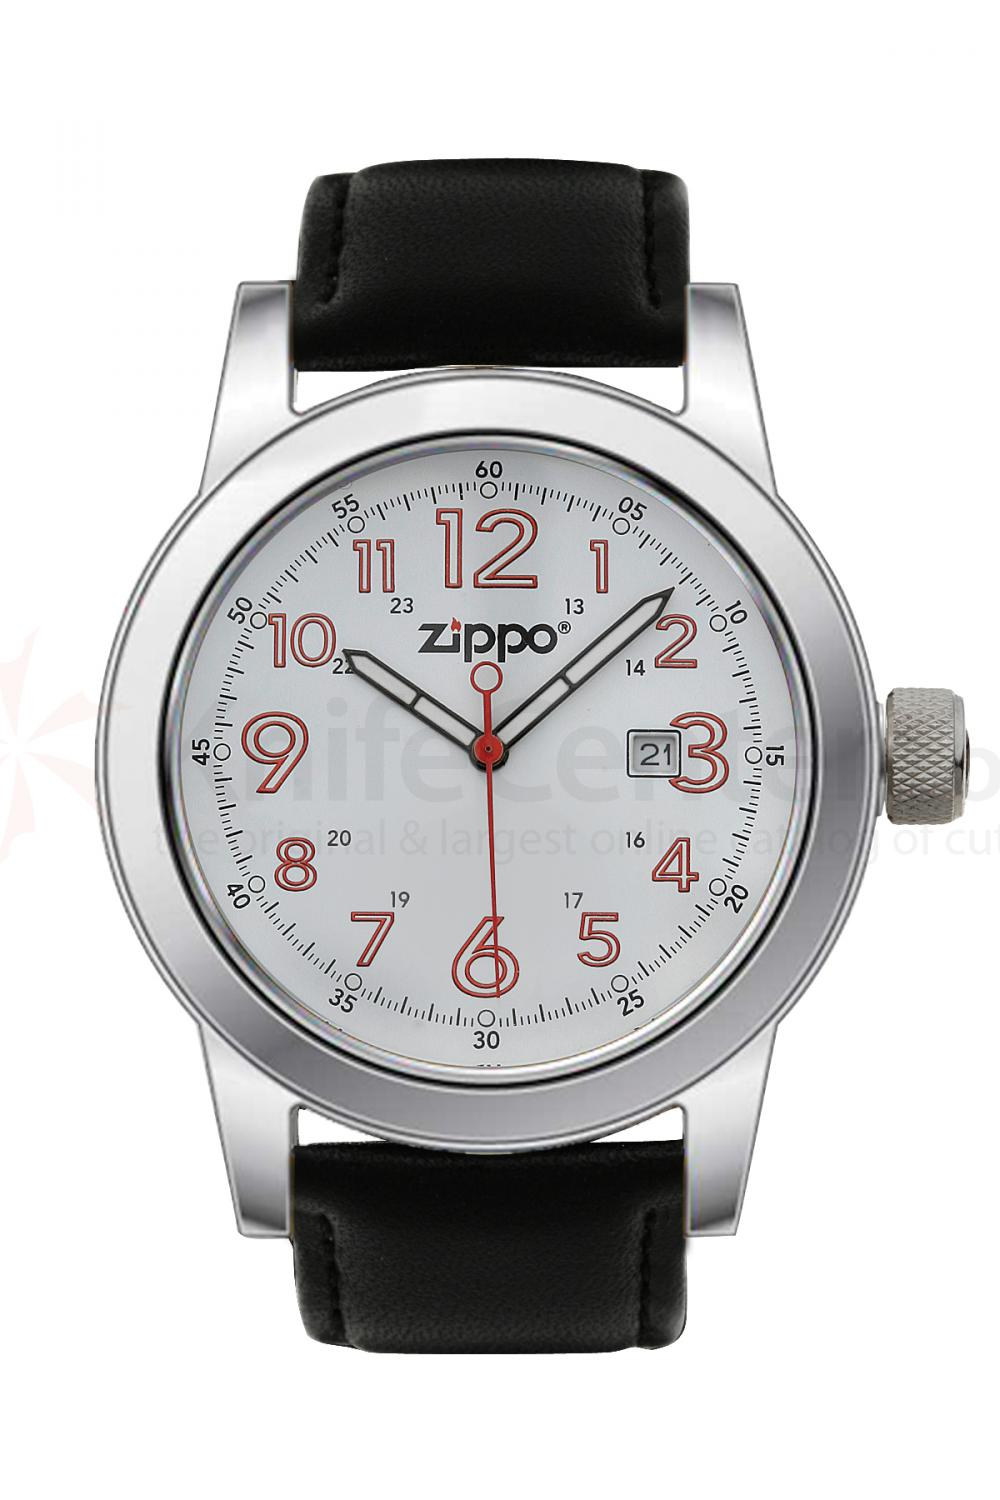 Zippo Watch White Face / Black Leather Band